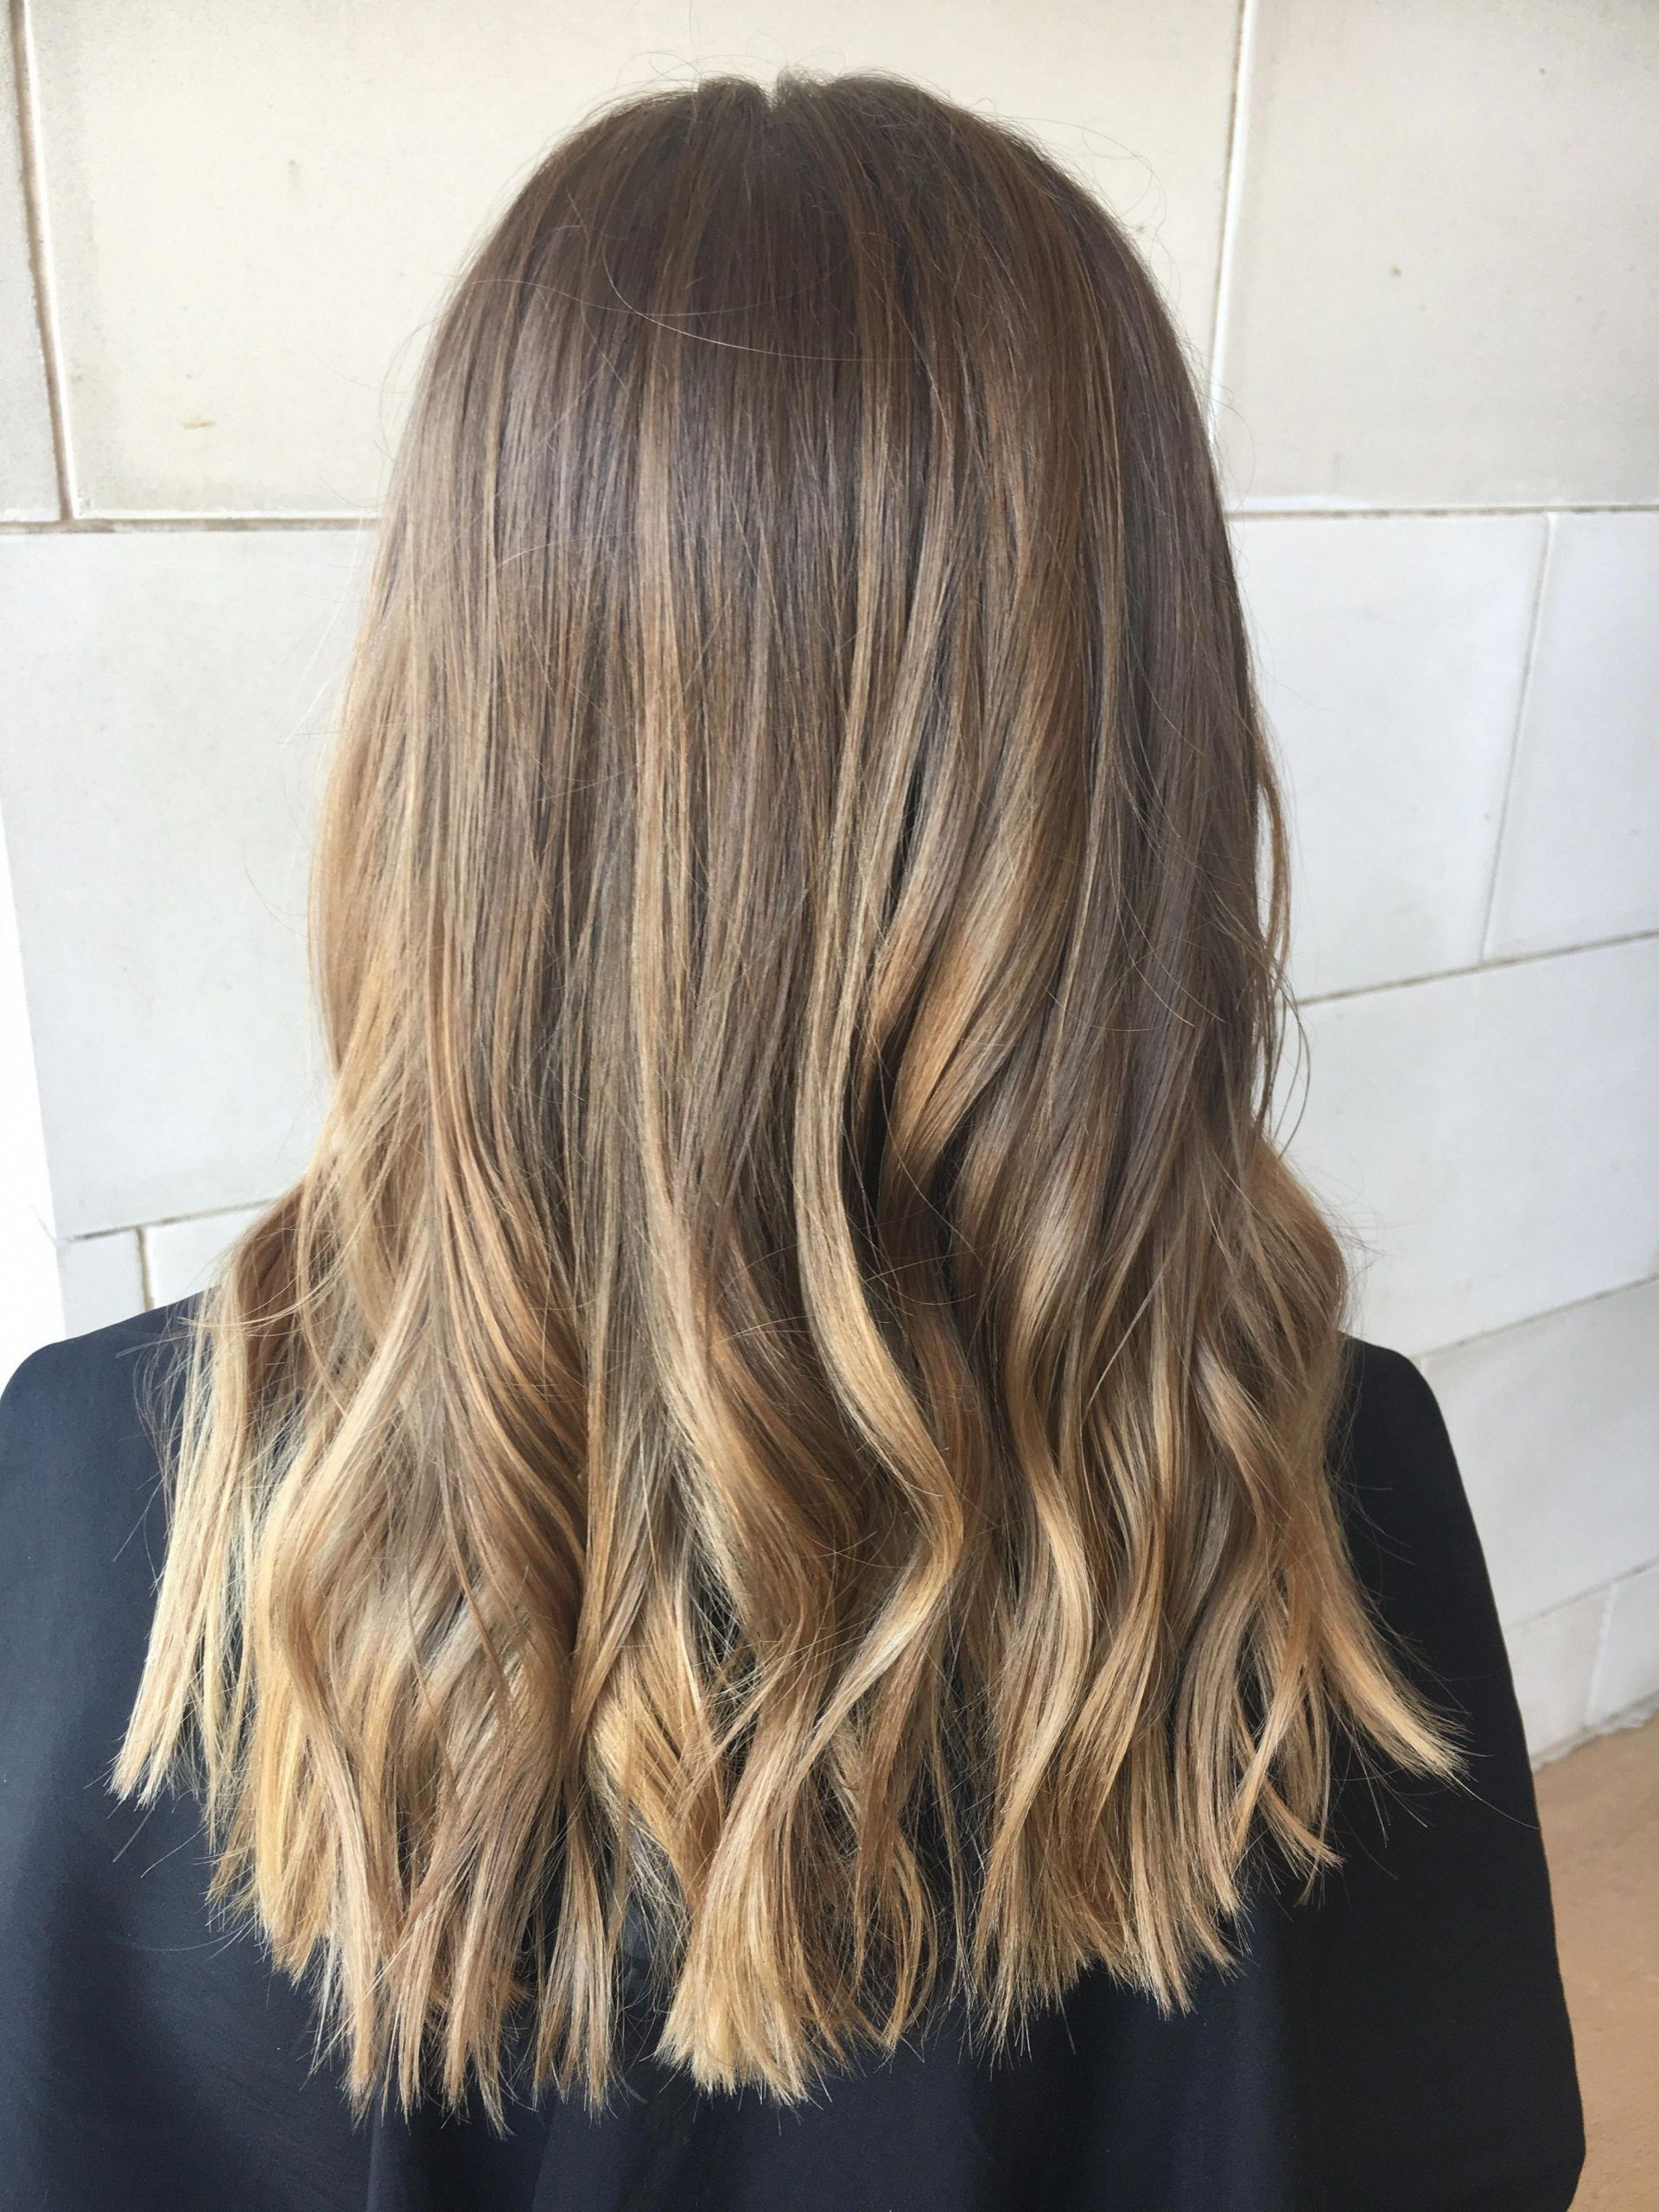 44 Contemporary Boliage Hairbalayage Light Brown And Blonde Medium Length Hair Blonde Bol In 2020 Medium Length Hair Styles Brown Hair Balayage Ombre Hair Blonde